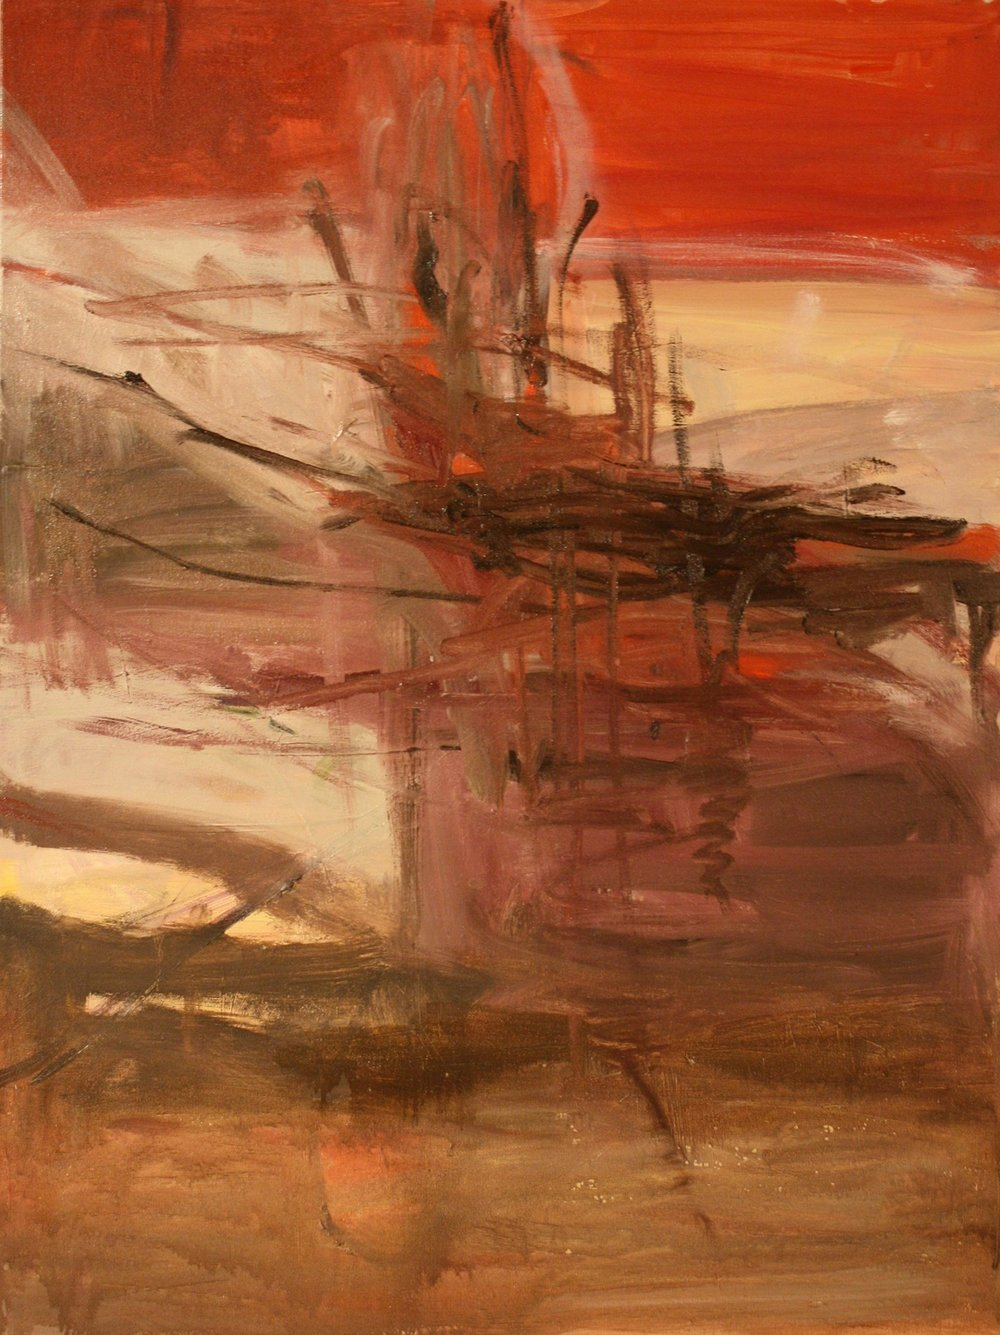 Painting_59_Red Study.jpg